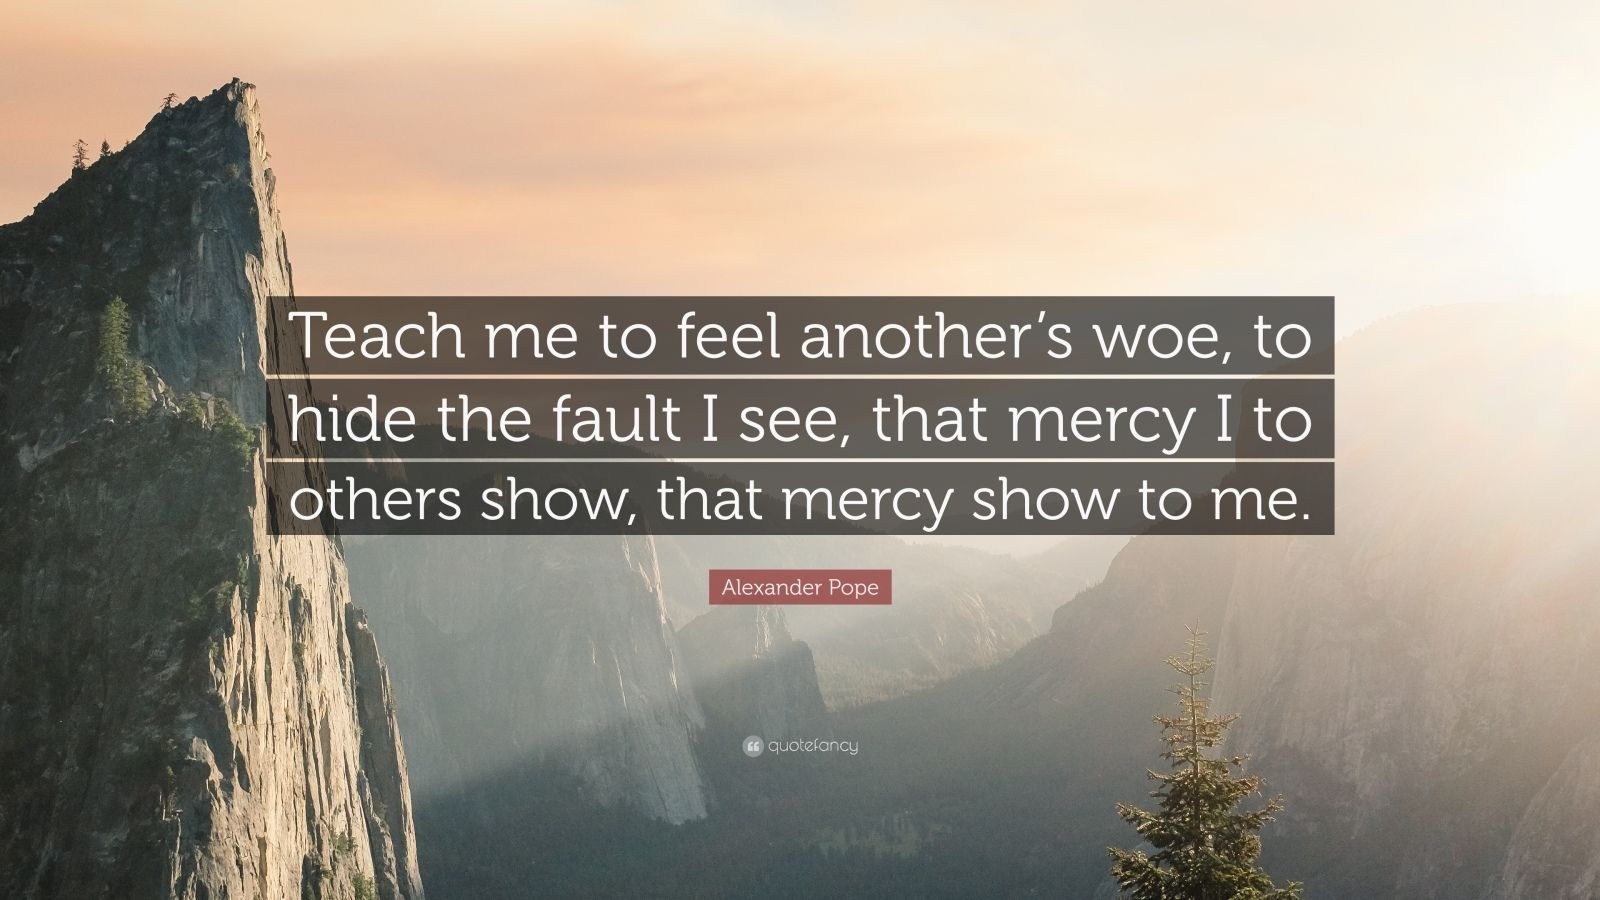 """Alexander Pope Quote: """"Teach me to feel another's woe, to hide the fault I see, that mercy I to others show, that mercy show to me."""""""